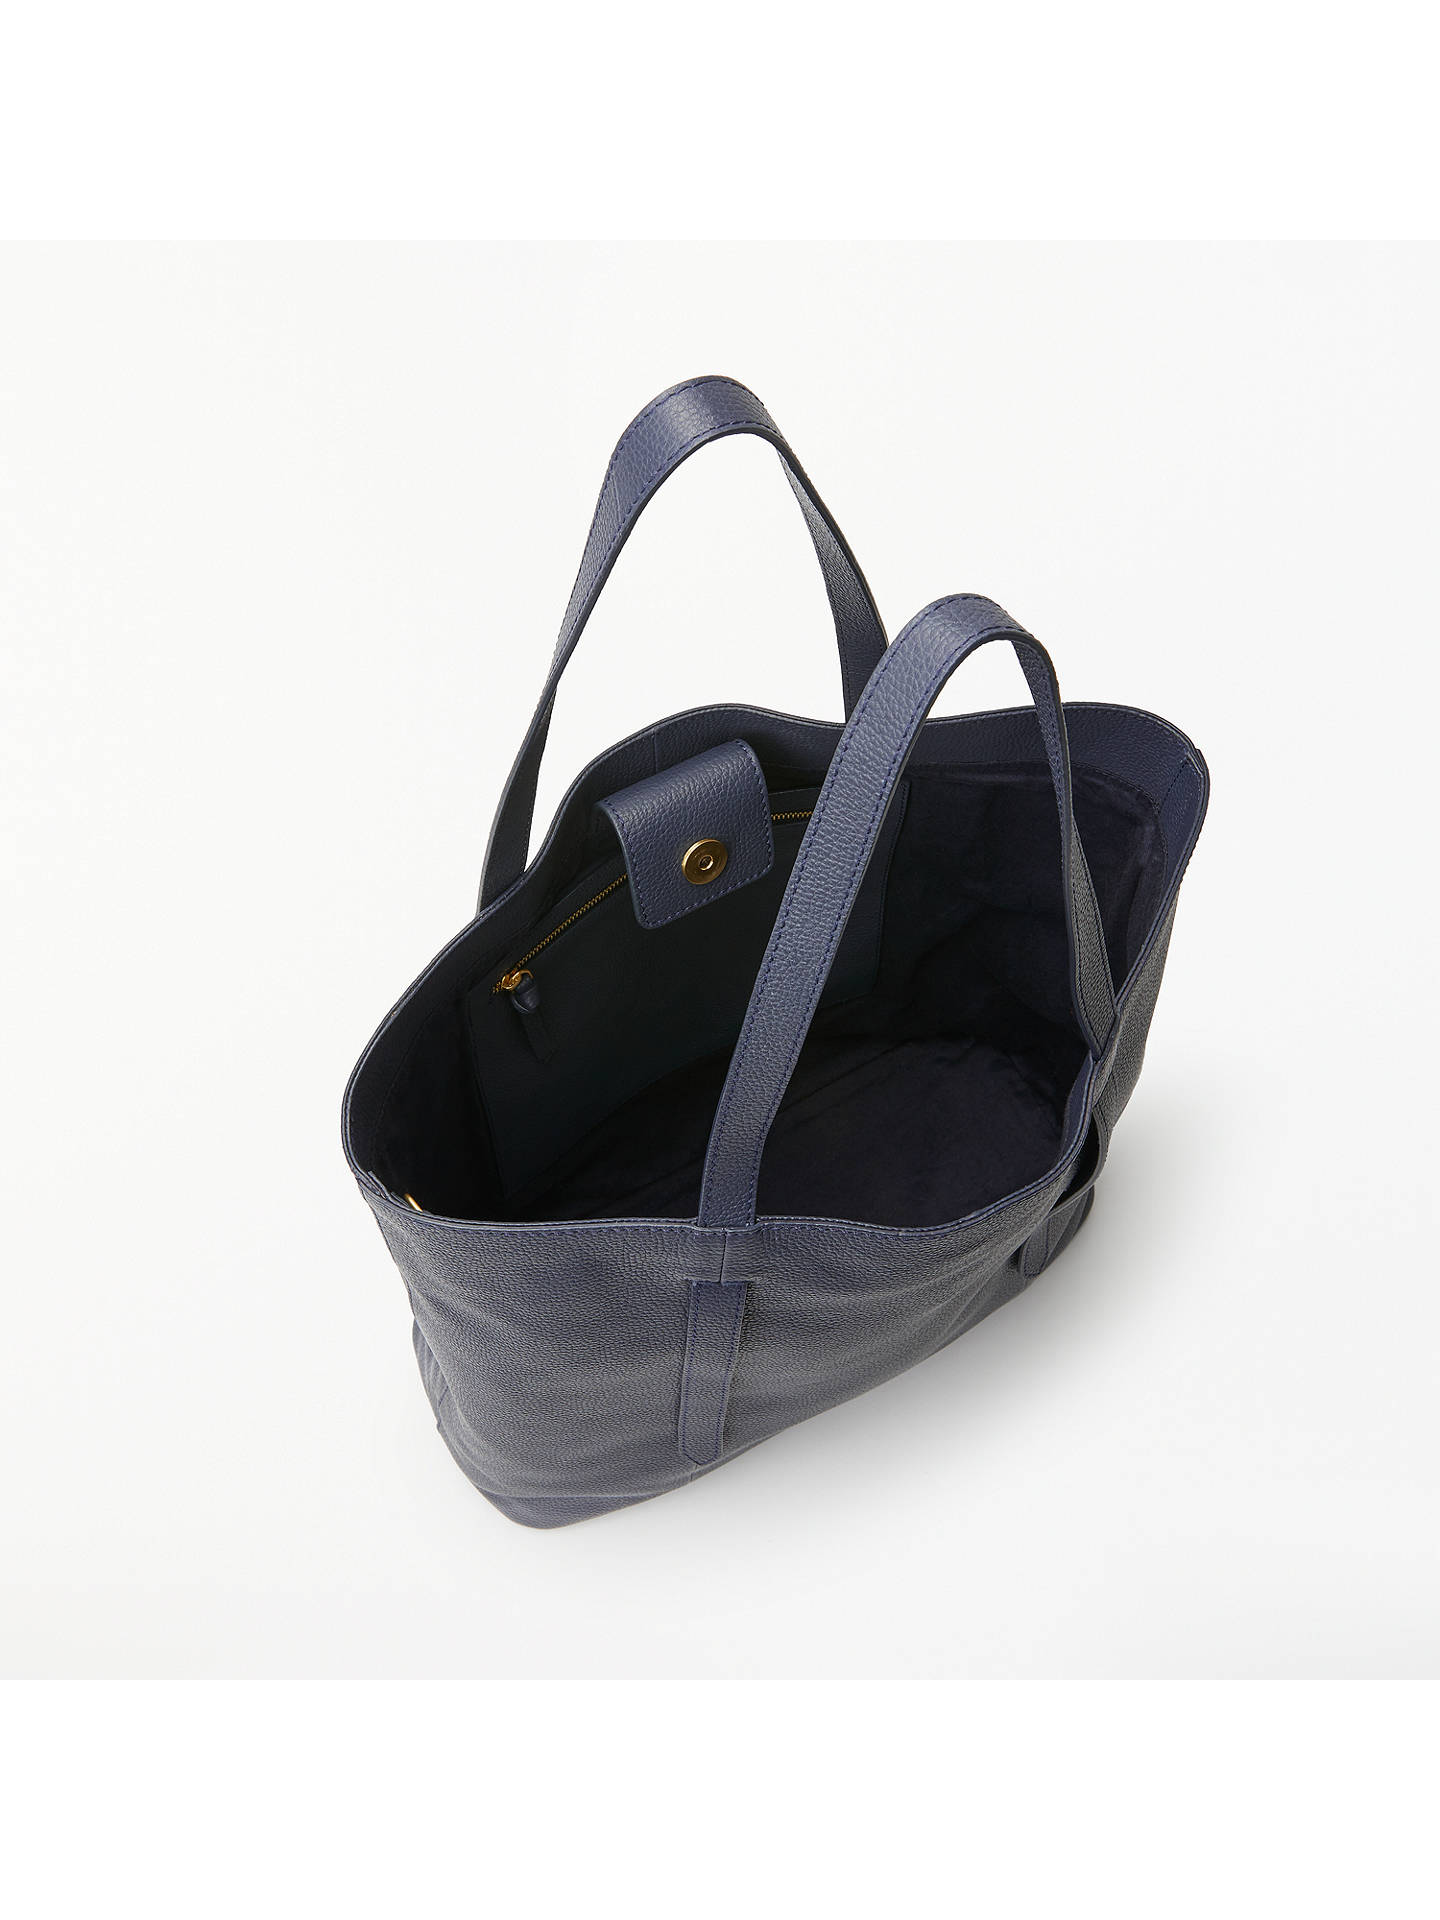 Buy John Lewis & Partners Cecilia Leather North/South Tote Bag, Navy Online at johnlewis.com